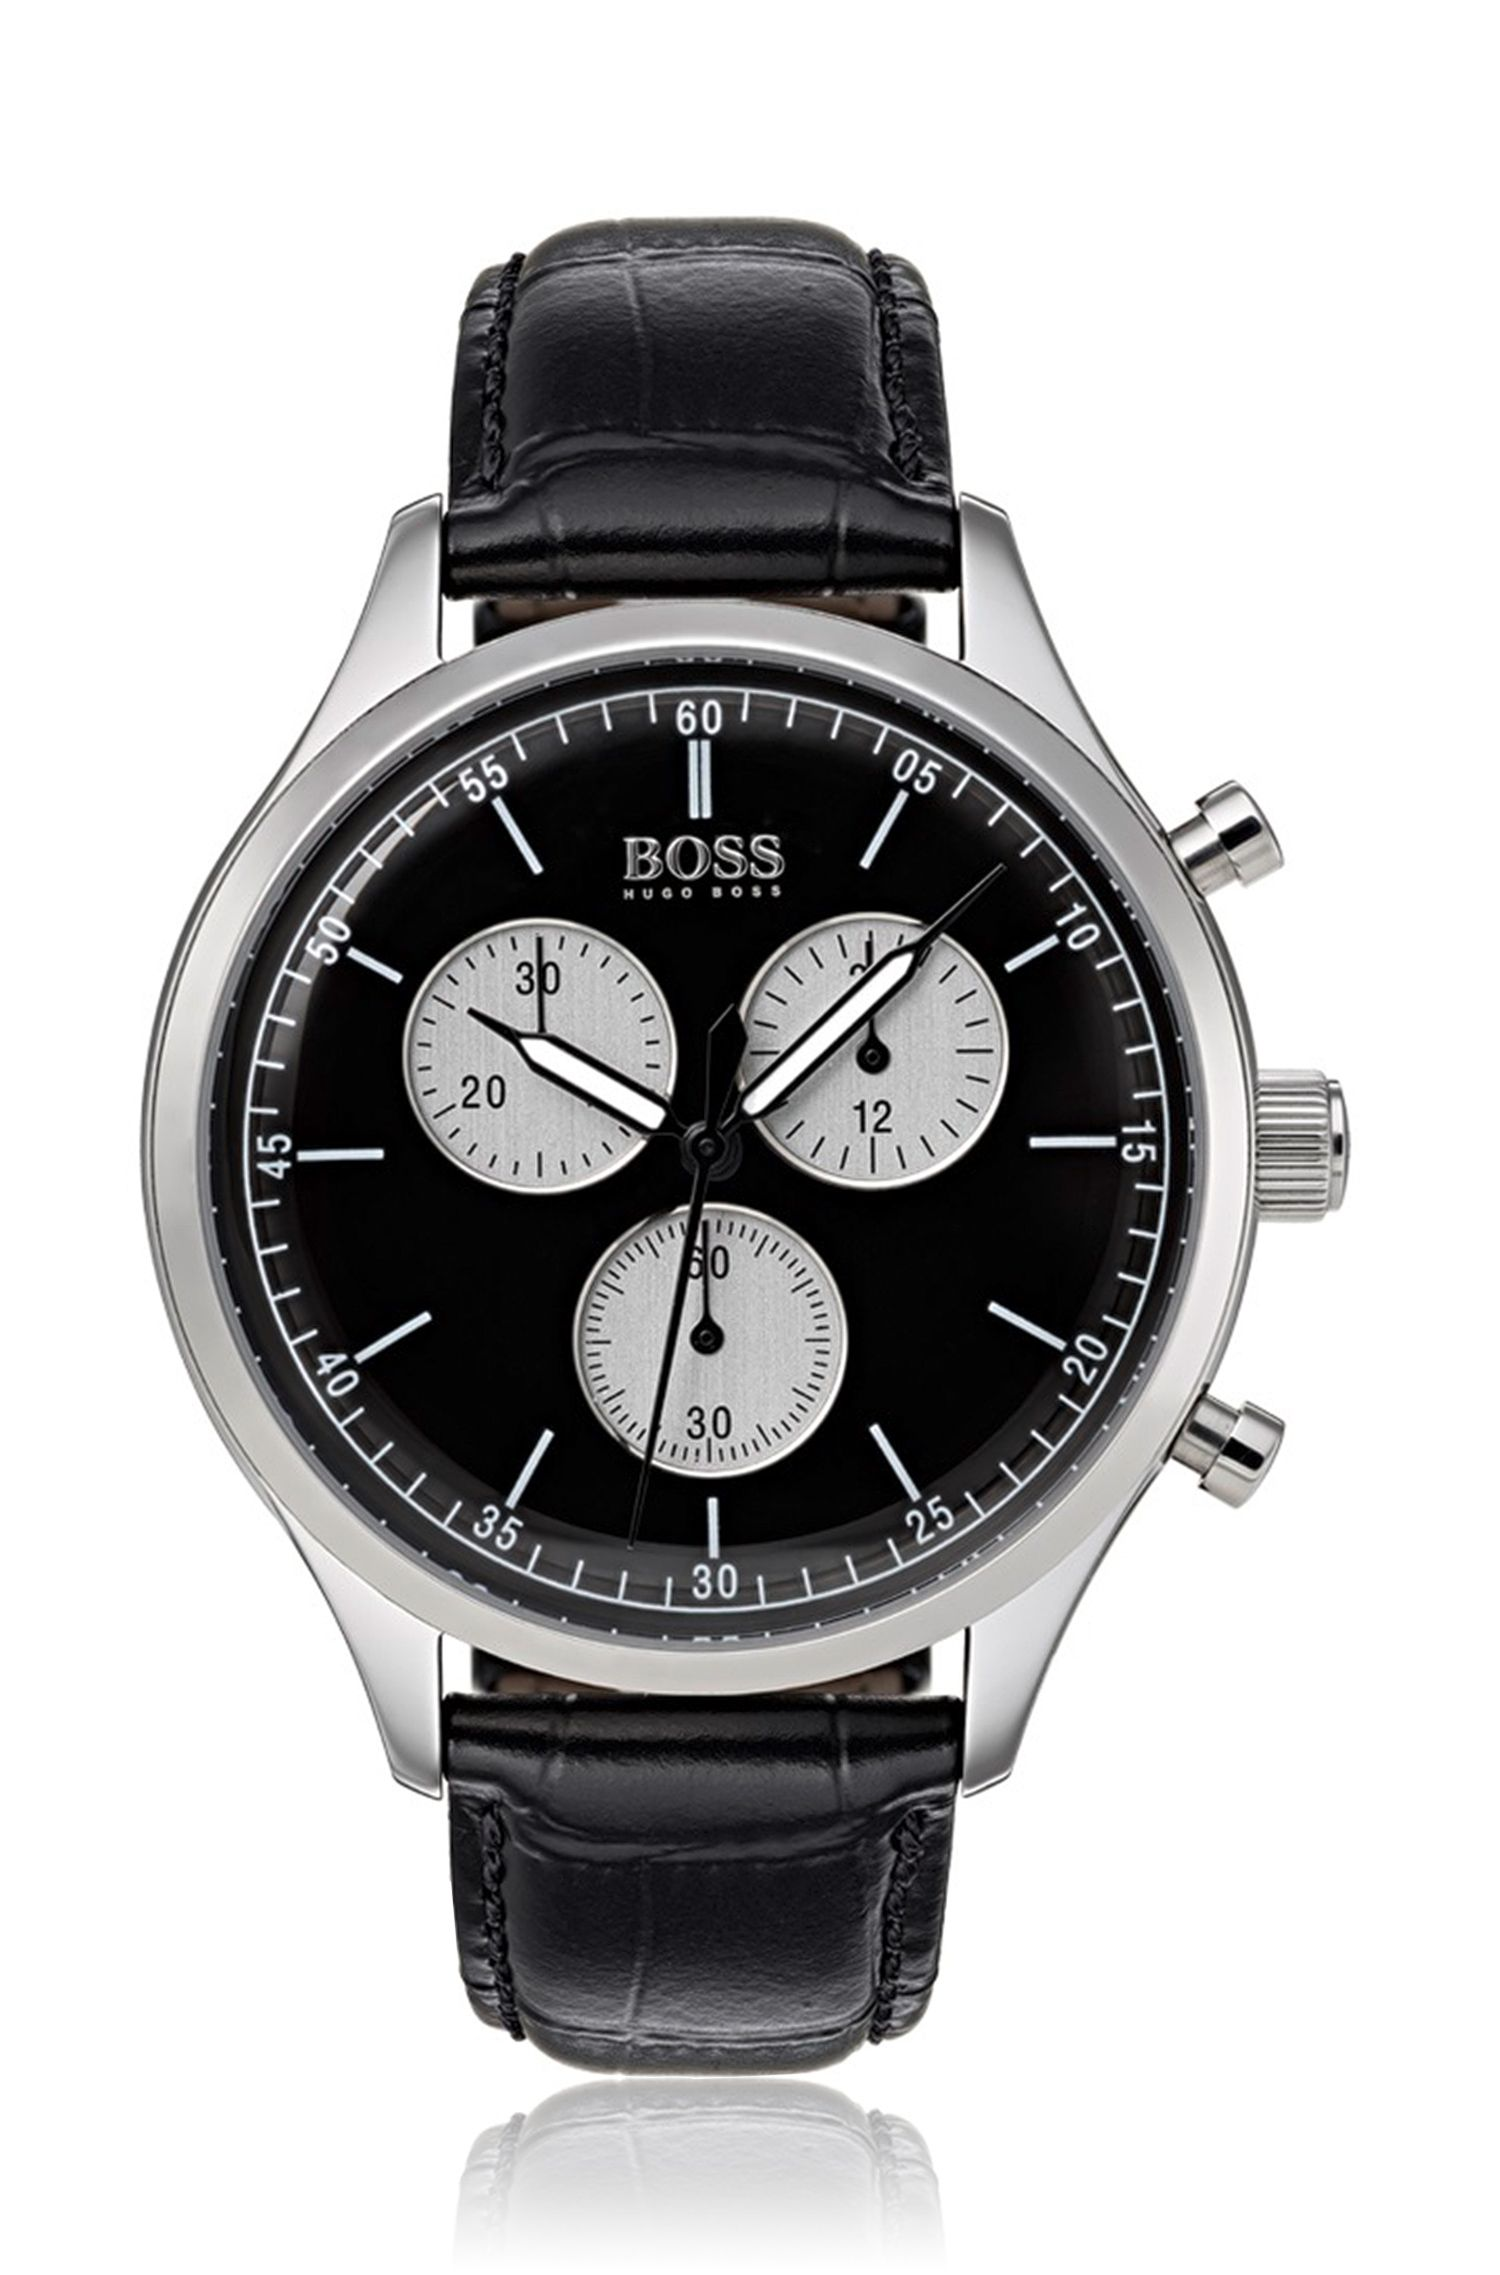 Stainless-steel watch with black leather strap